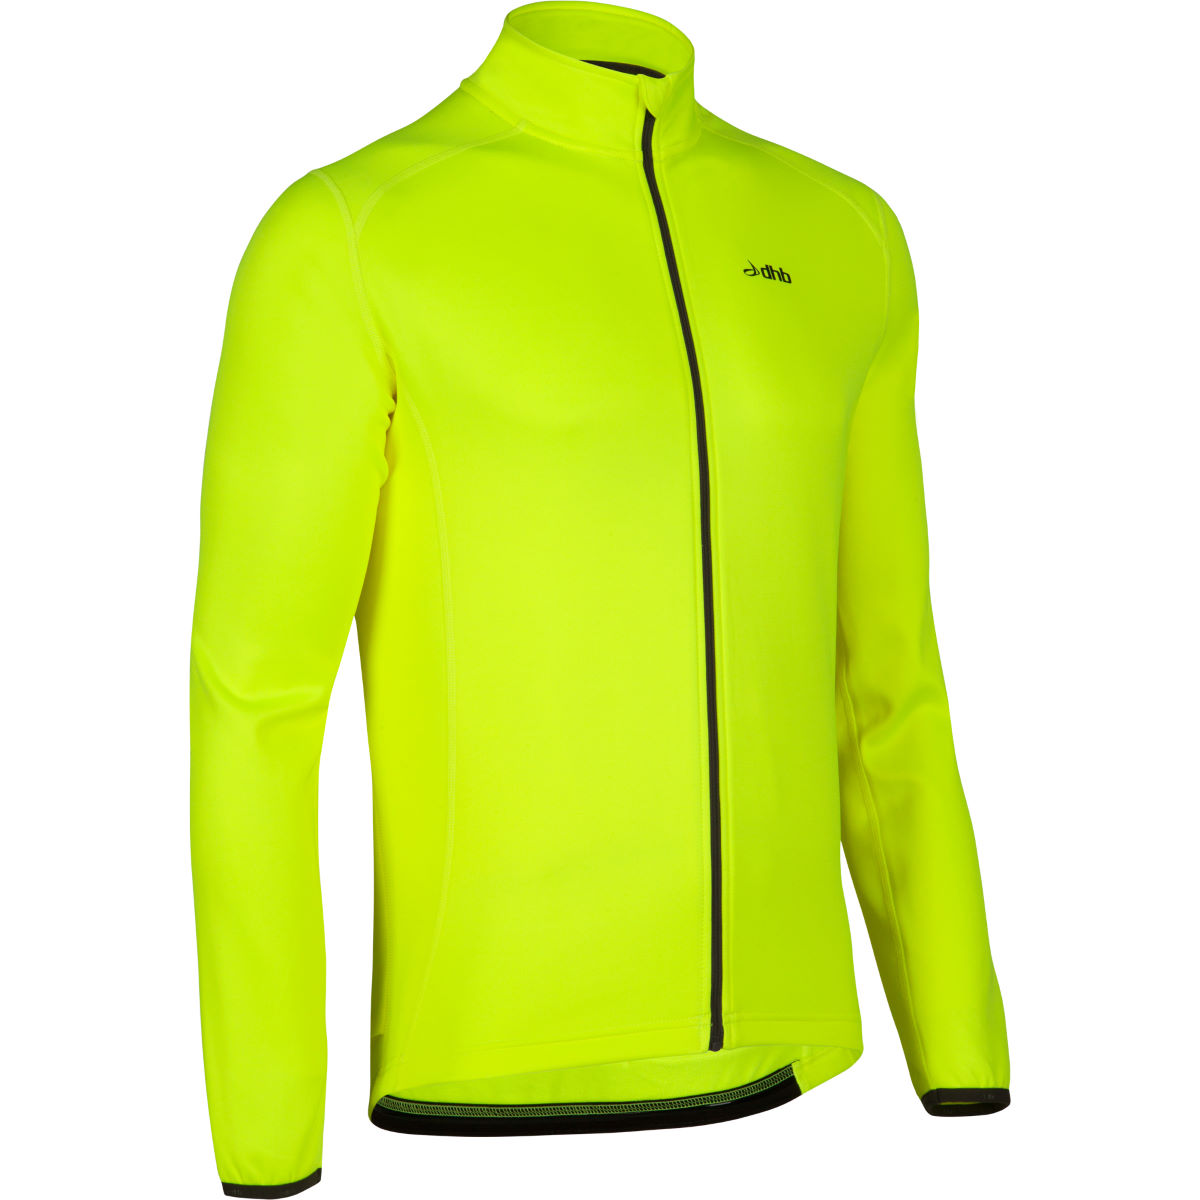 dhb Active Thermal Long Sleeve Jersey